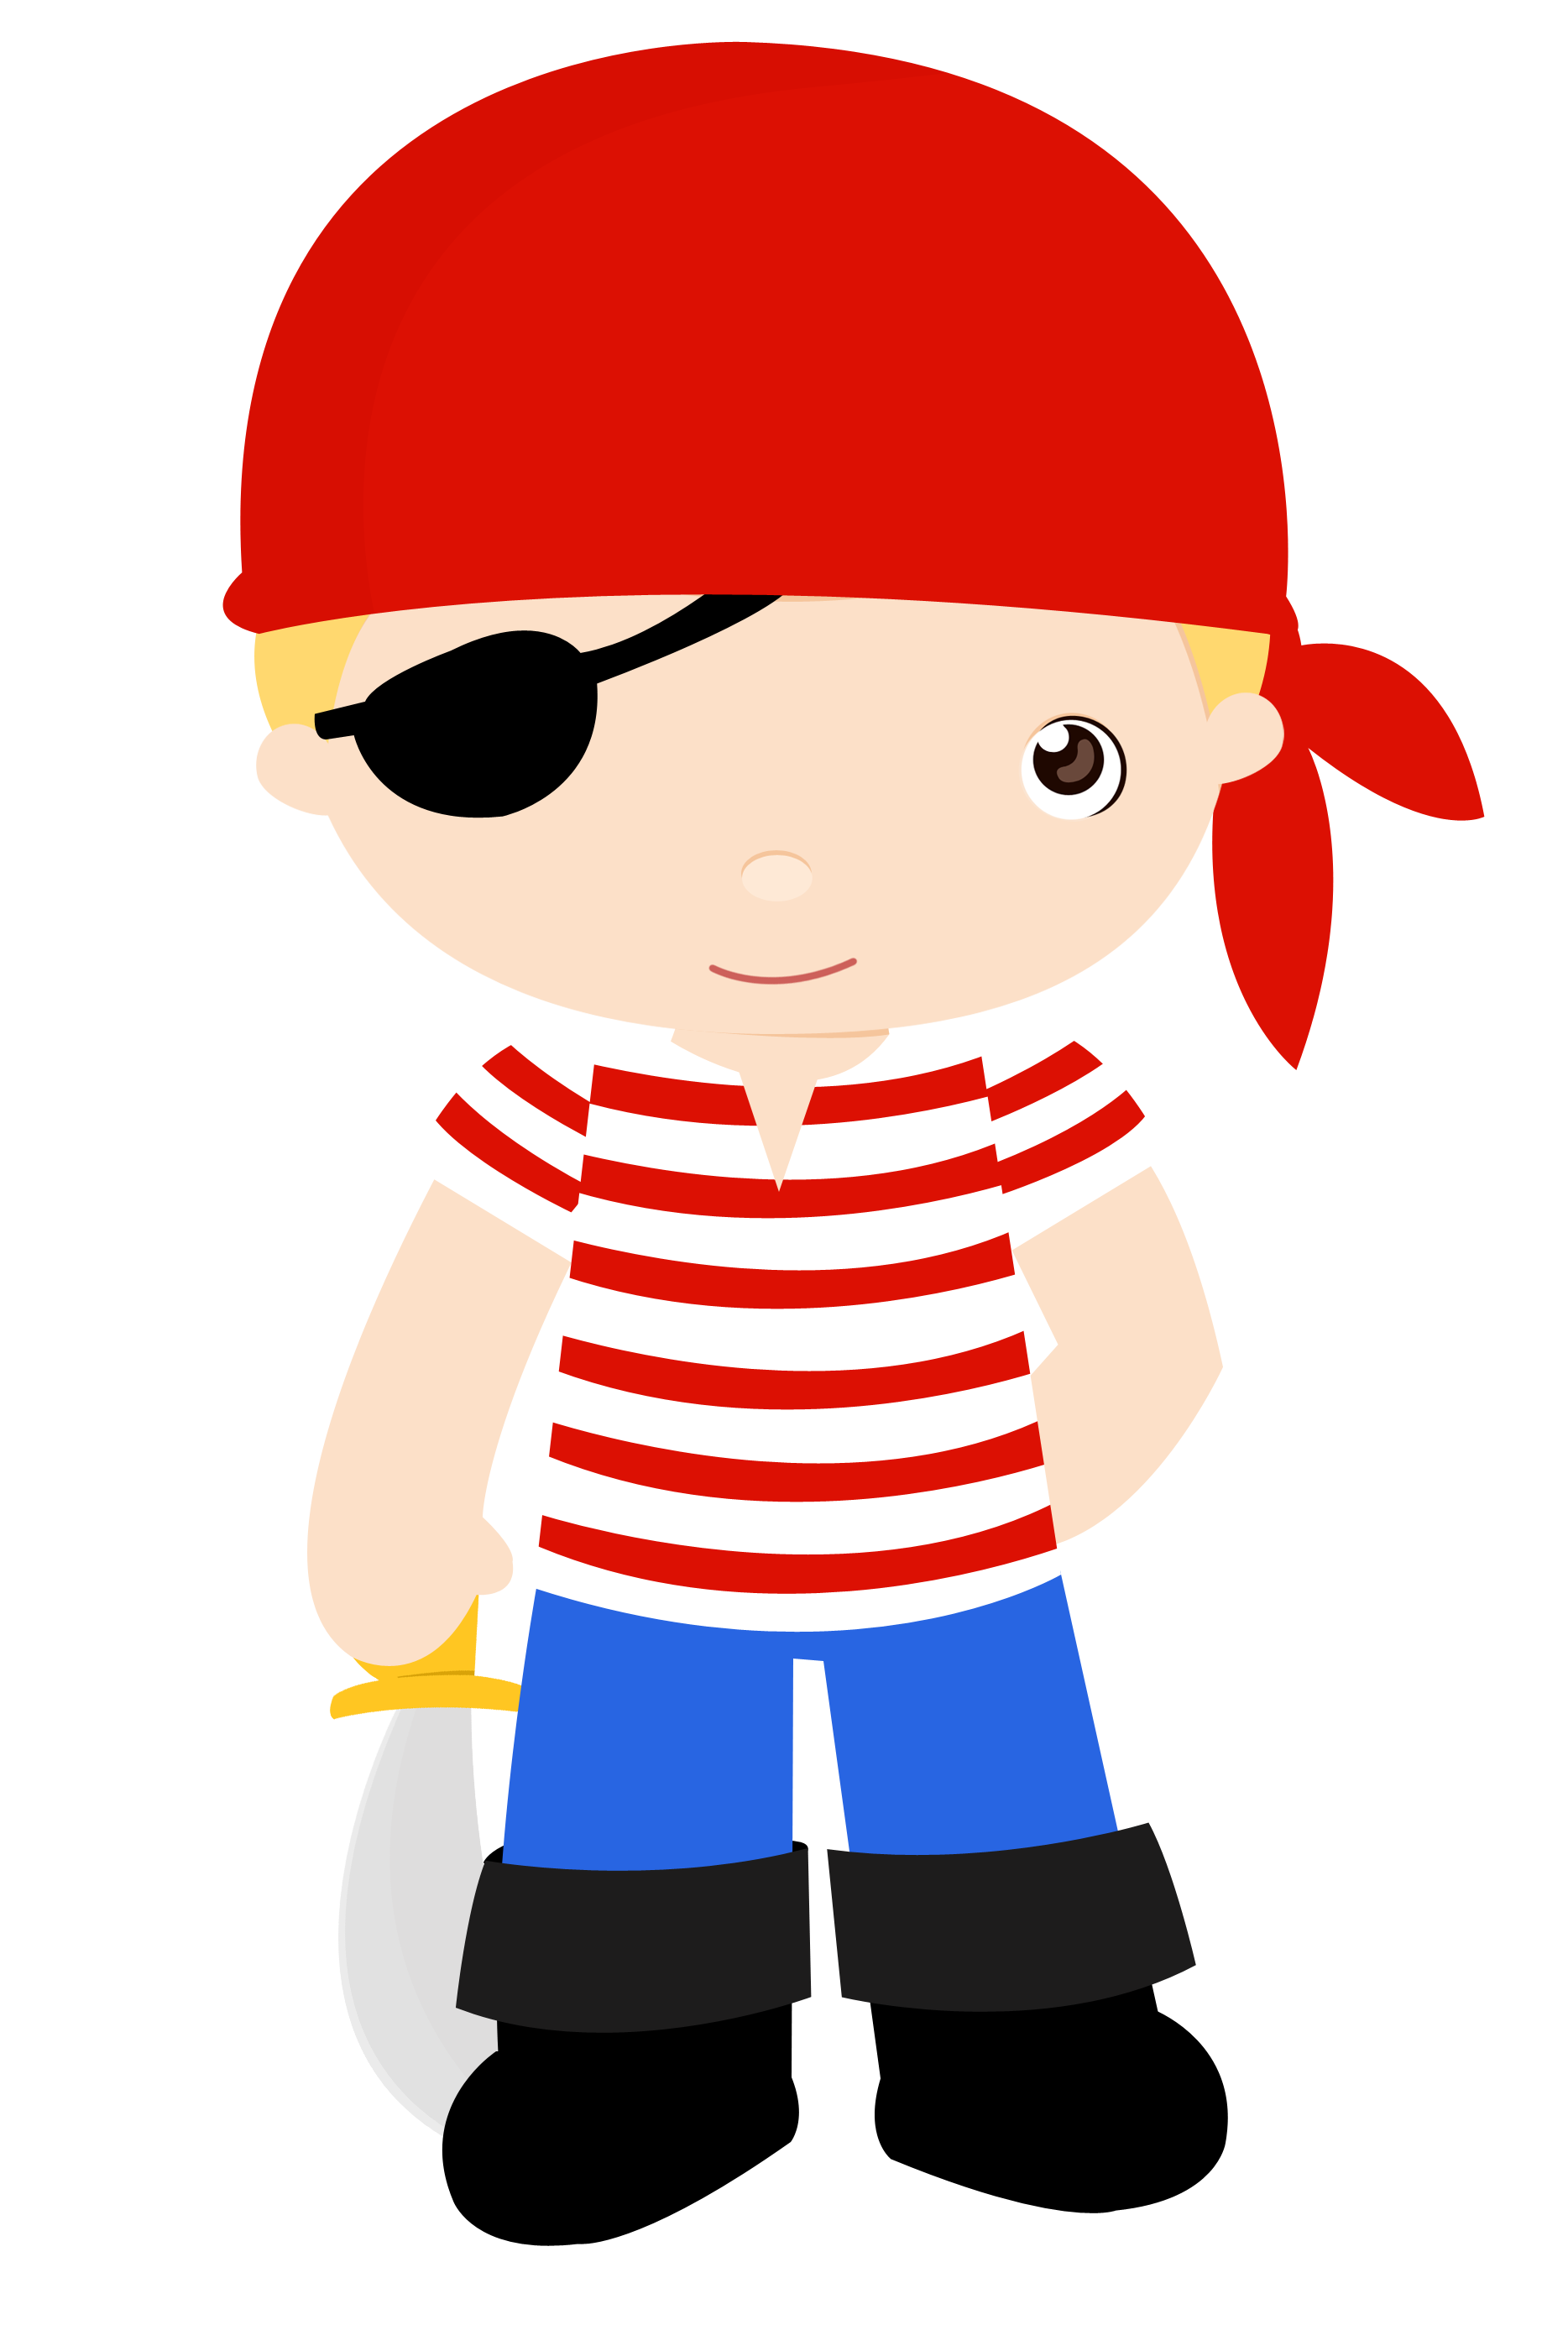 Clipart pants pirate. Cat costume party png